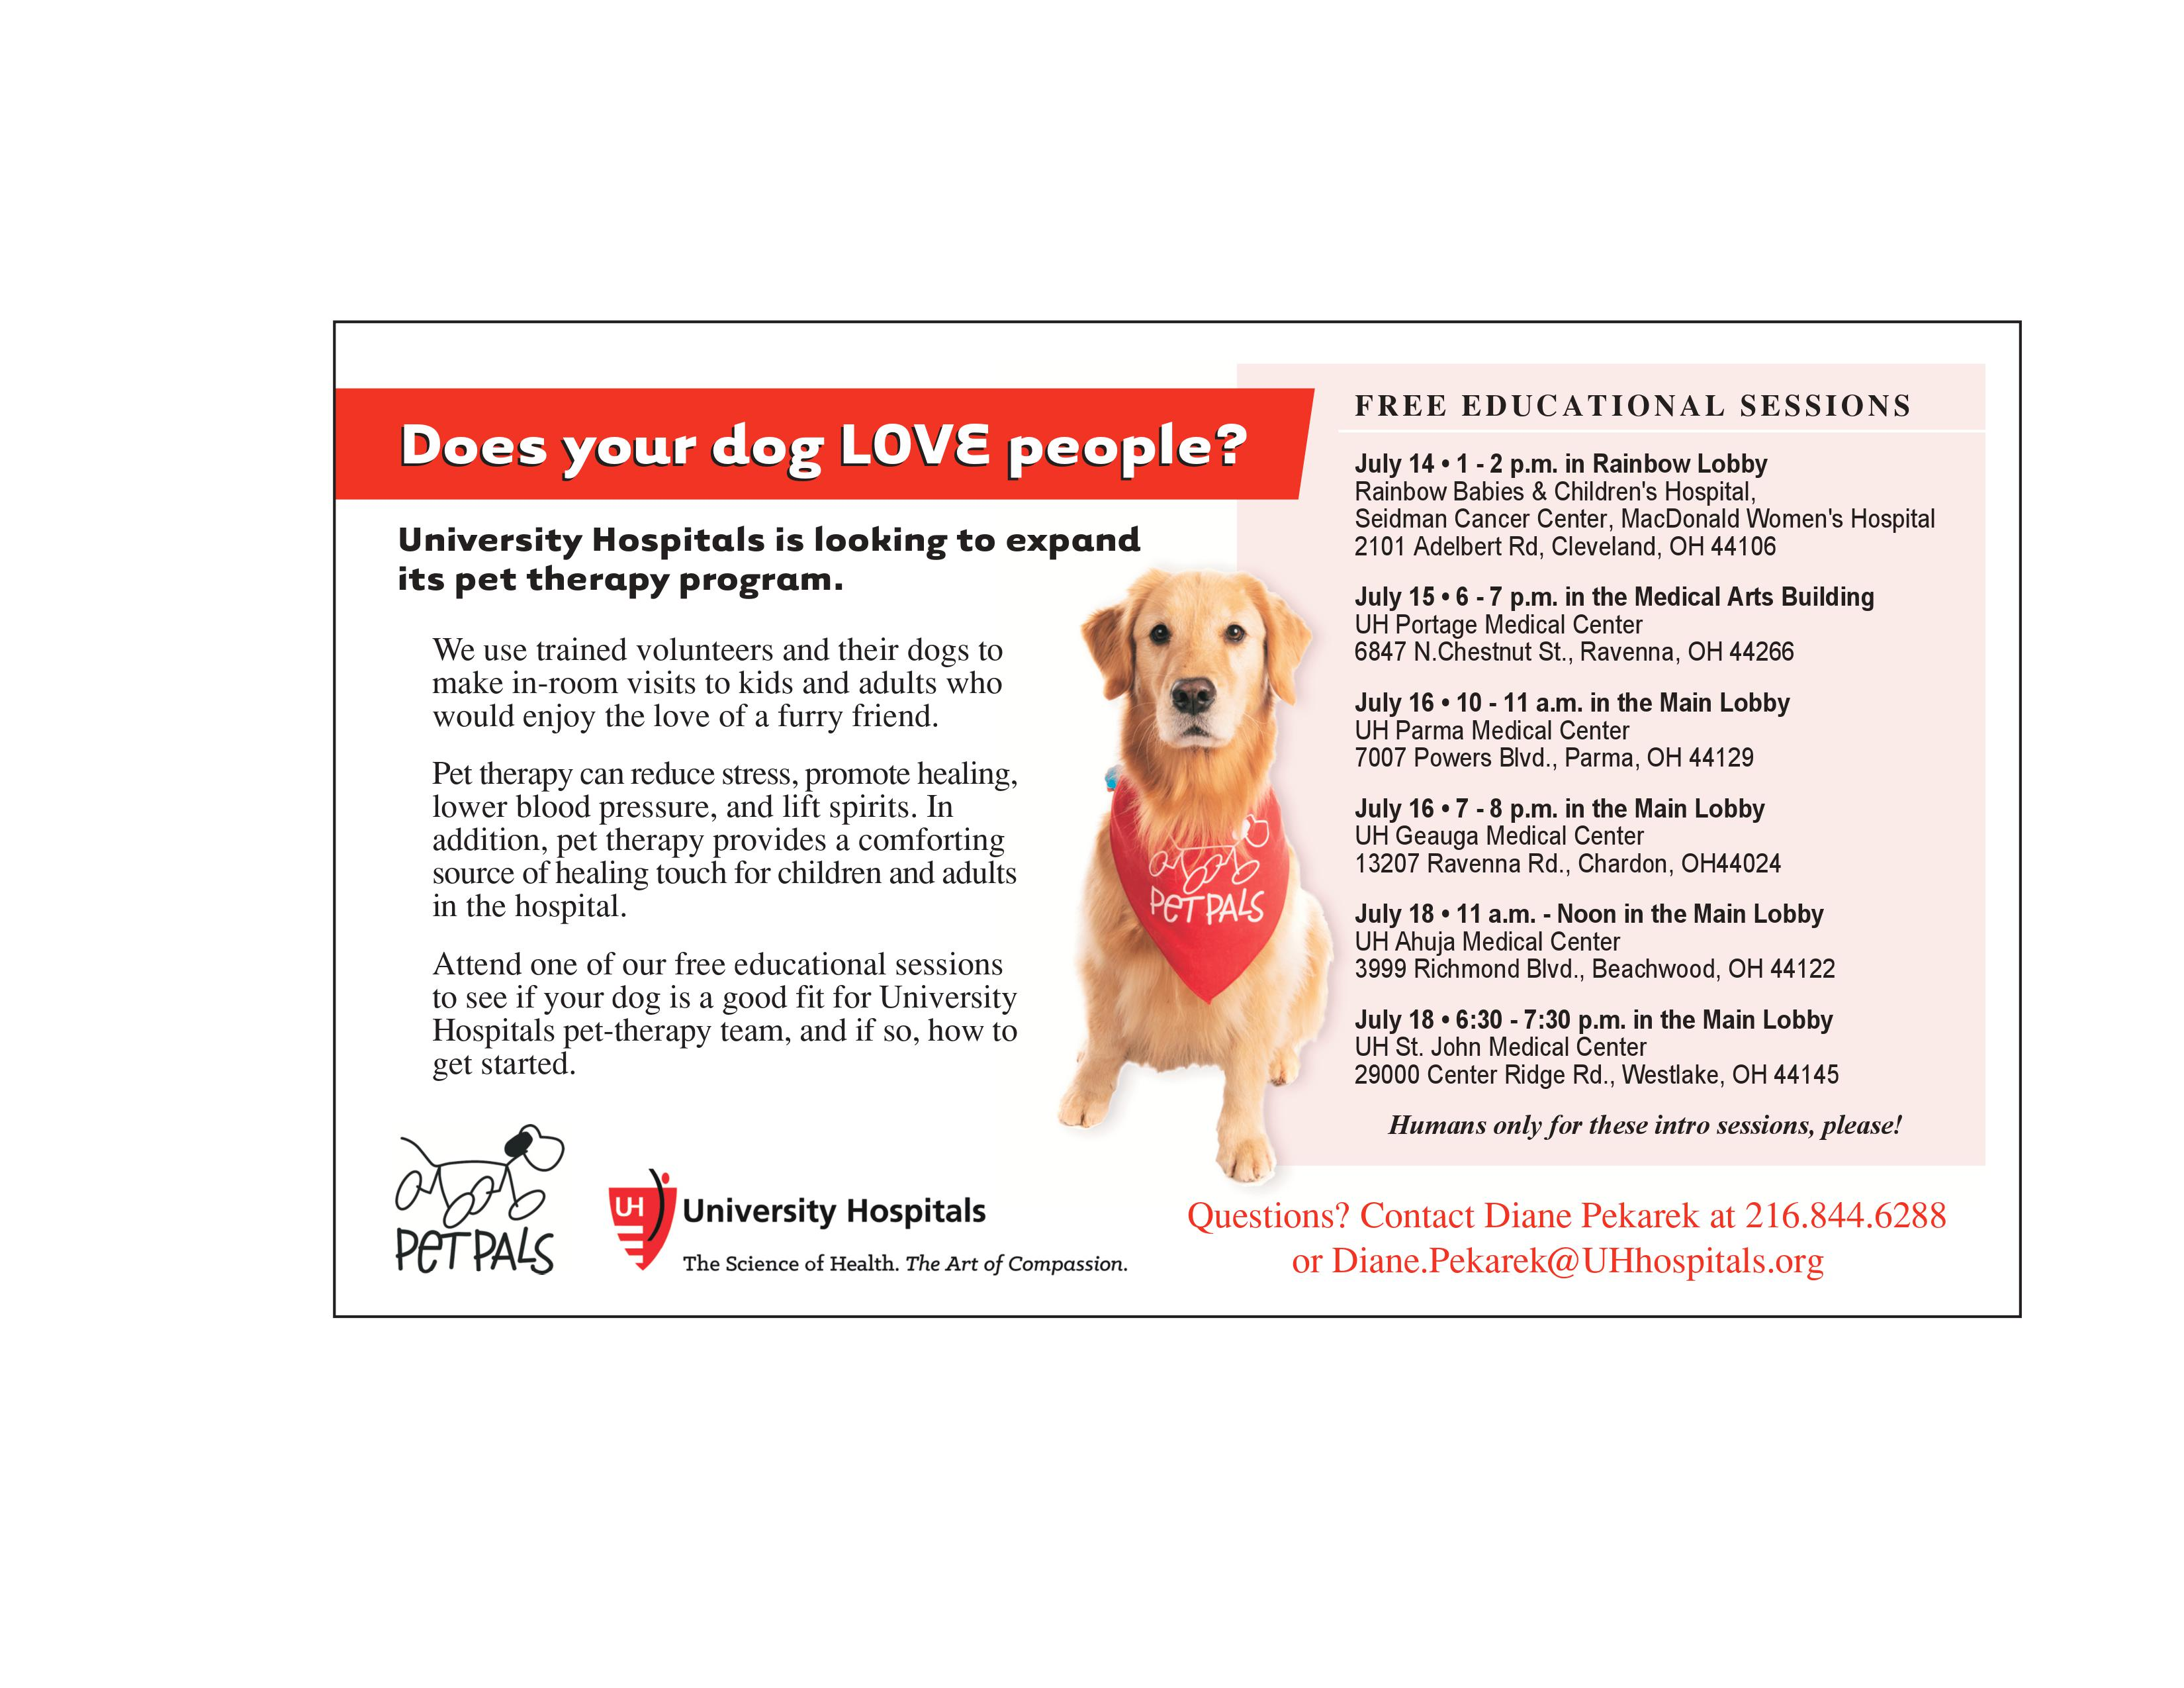 Does Your Dog Love People? UH St  John Wants You! - The